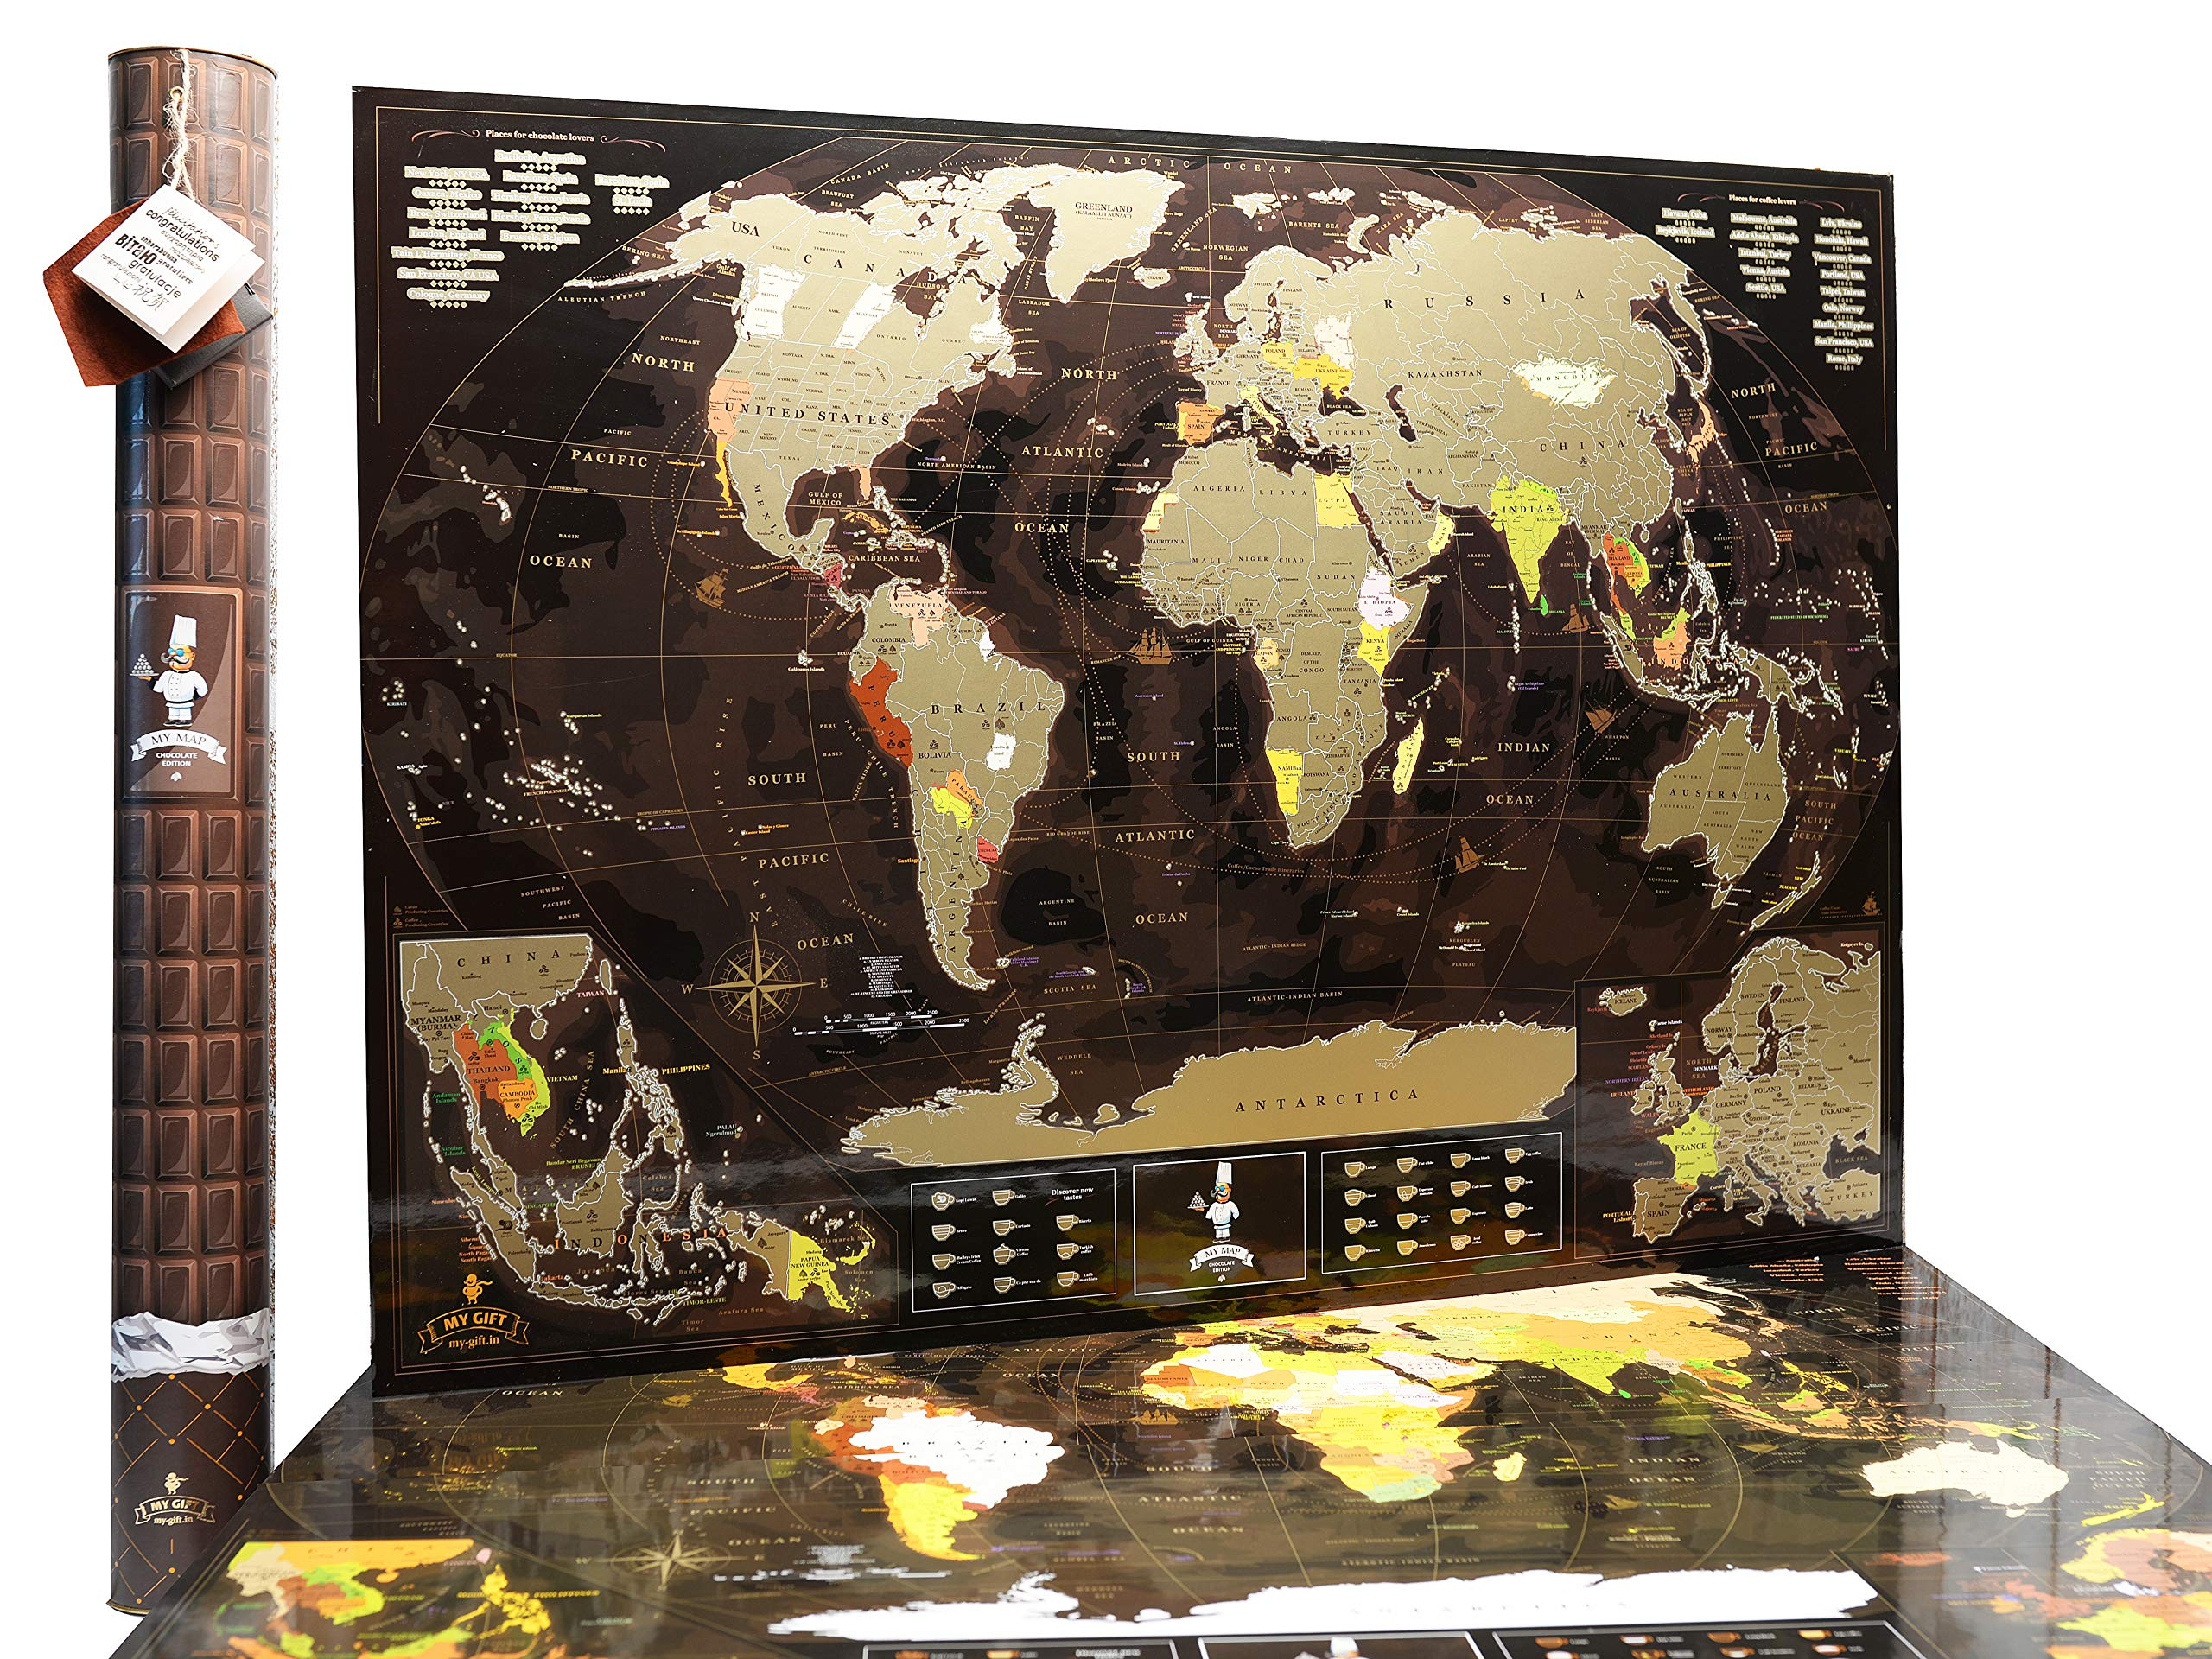 World Scratch Off Map Coffee Gold w/ enLarge Europe and Asia Map | 35'' x 25'' Push Pin Travel Map to Mark your Trips and Adventures by MyMap